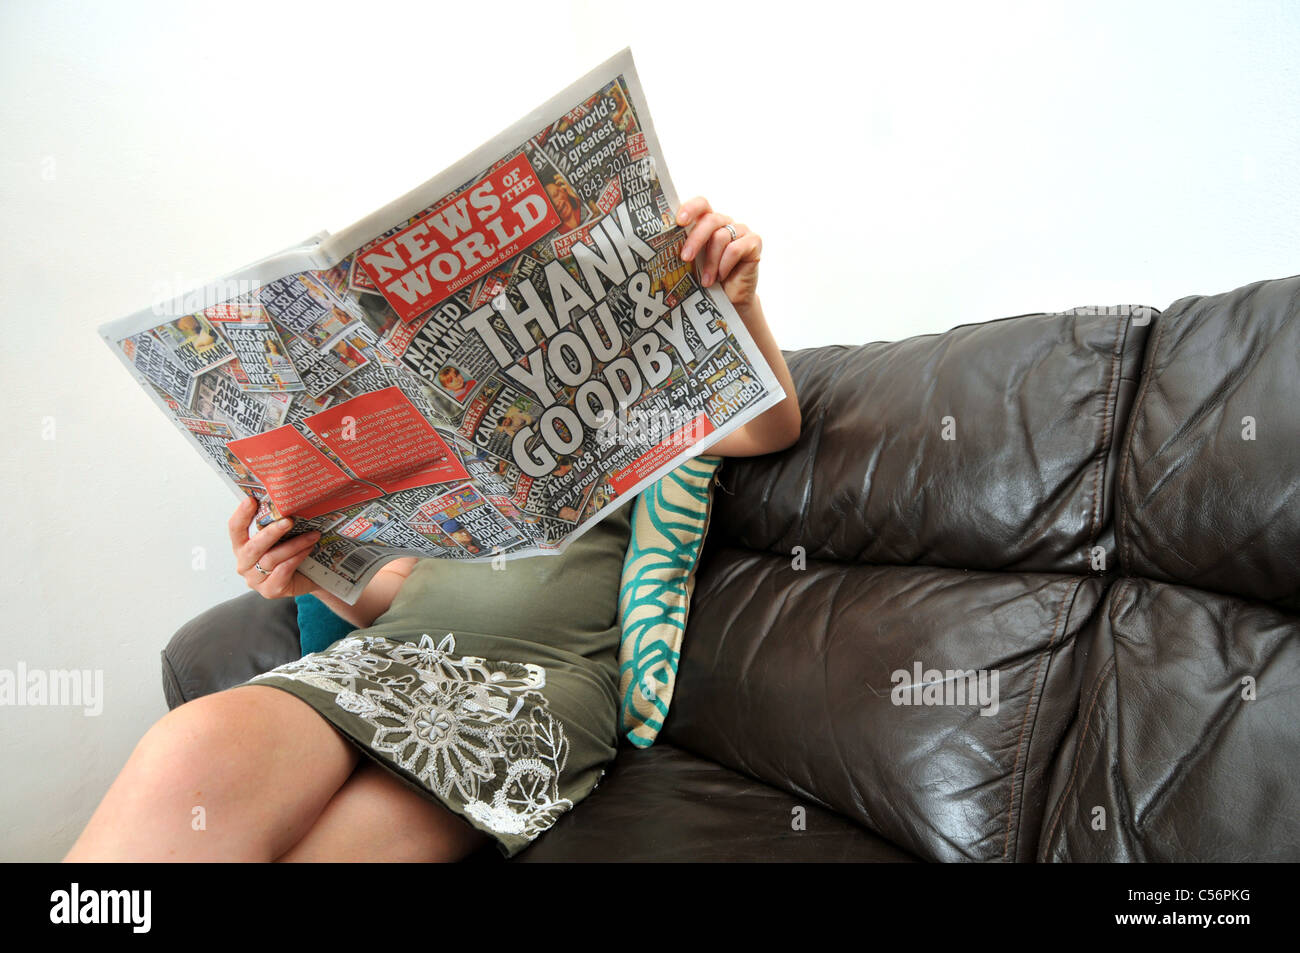 UK, Last ever publication of News of the World newspaper which is closing after 168 years - Stock Image